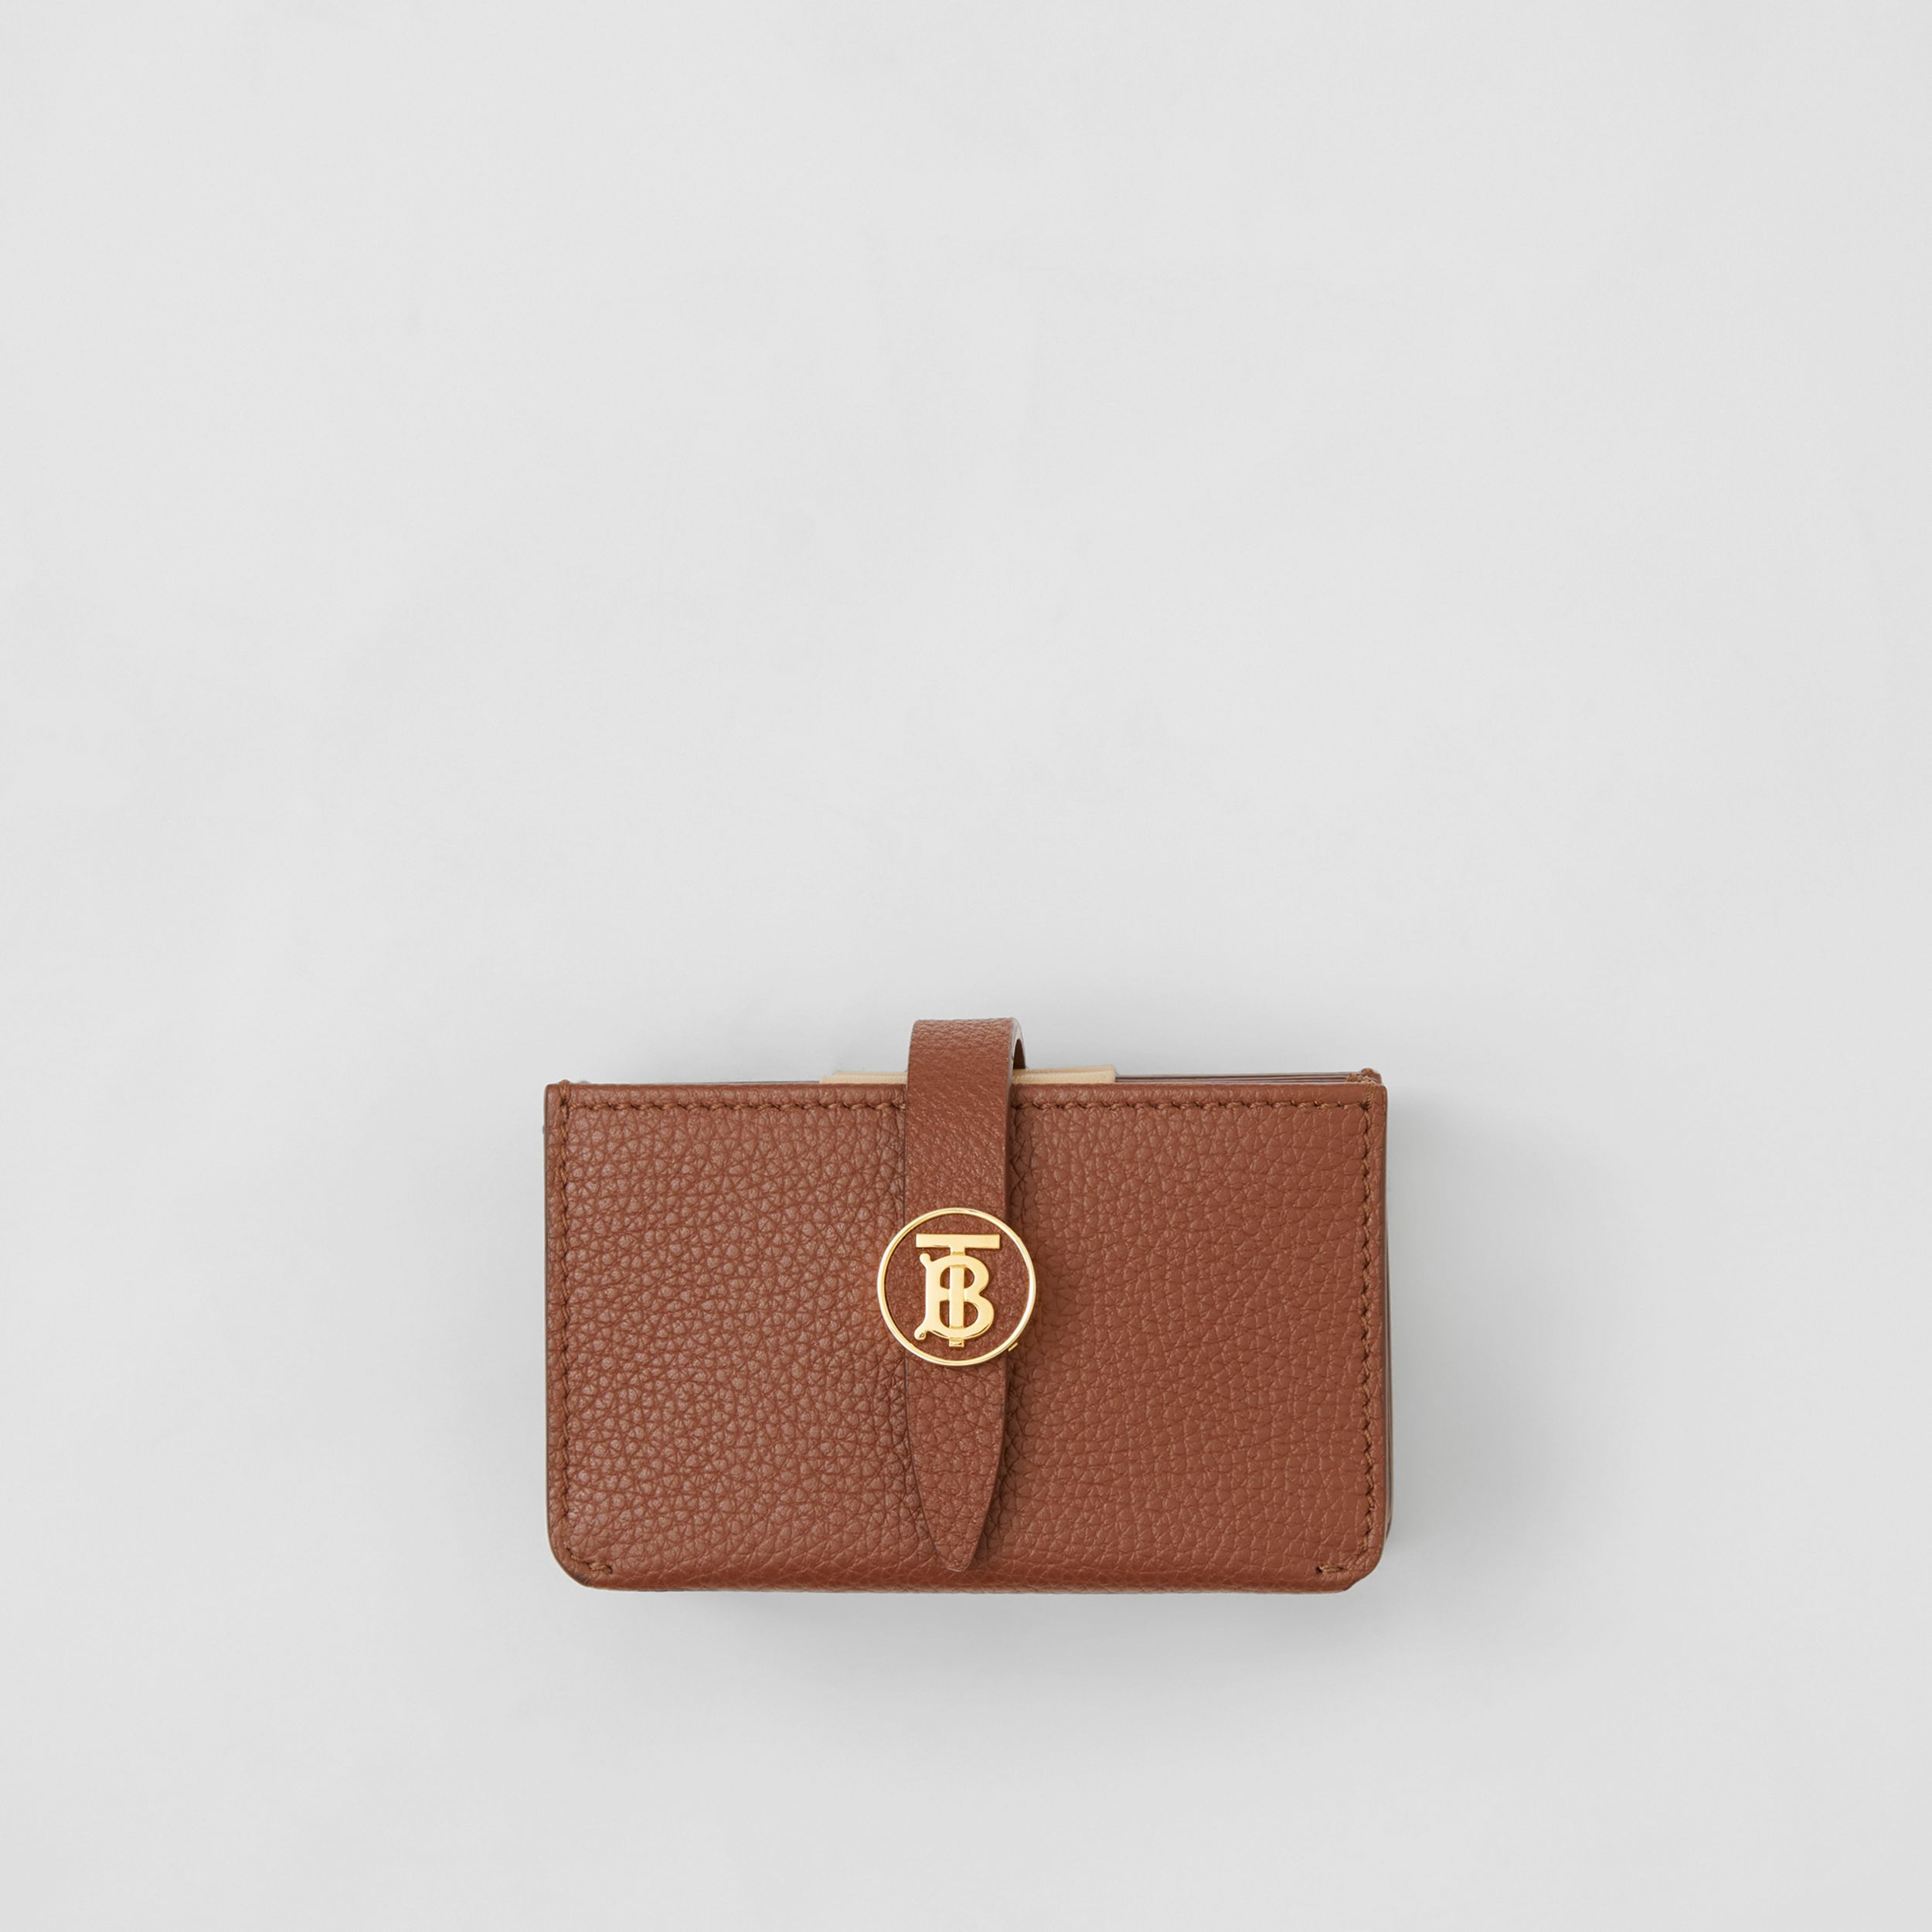 Monogram Motif Grainy Leather Card Case in Tan - Women | Burberry - 1